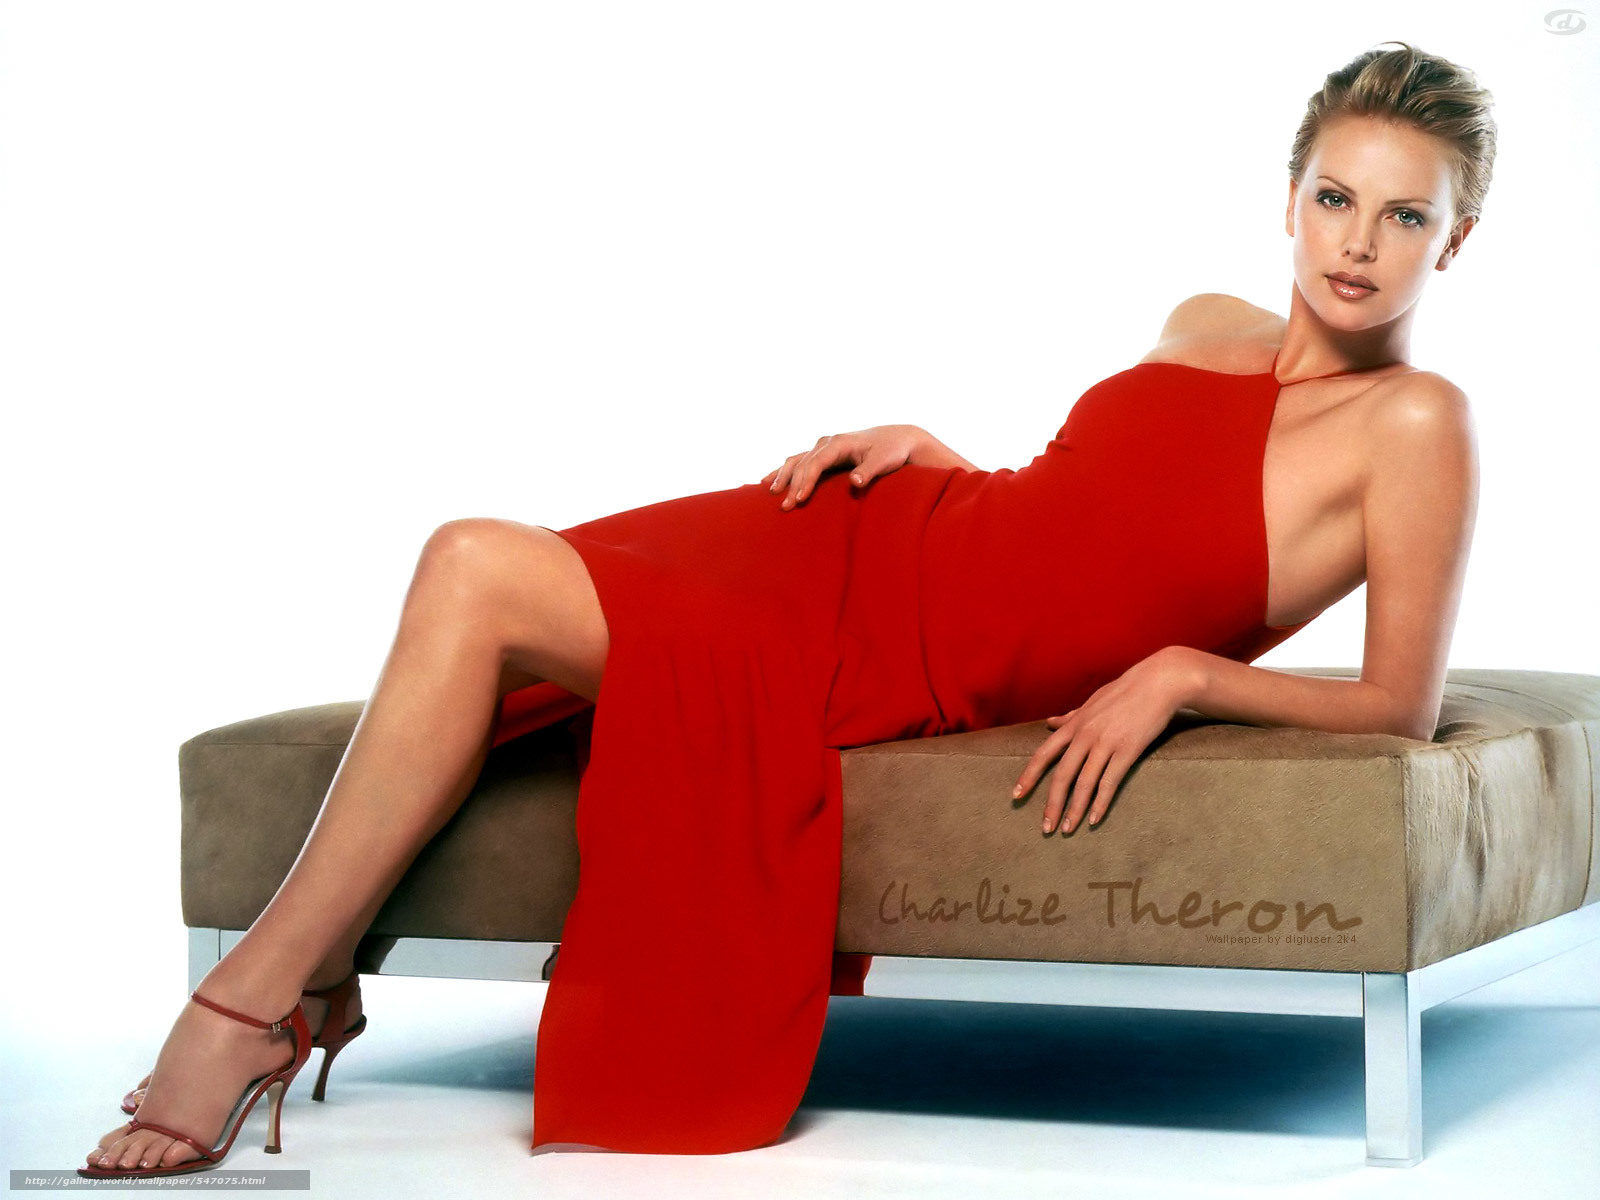 Download wallpaper Charlize,  Theron,  charlize,  theron free desktop wallpaper in the resolution 1600x1200 — picture №547075